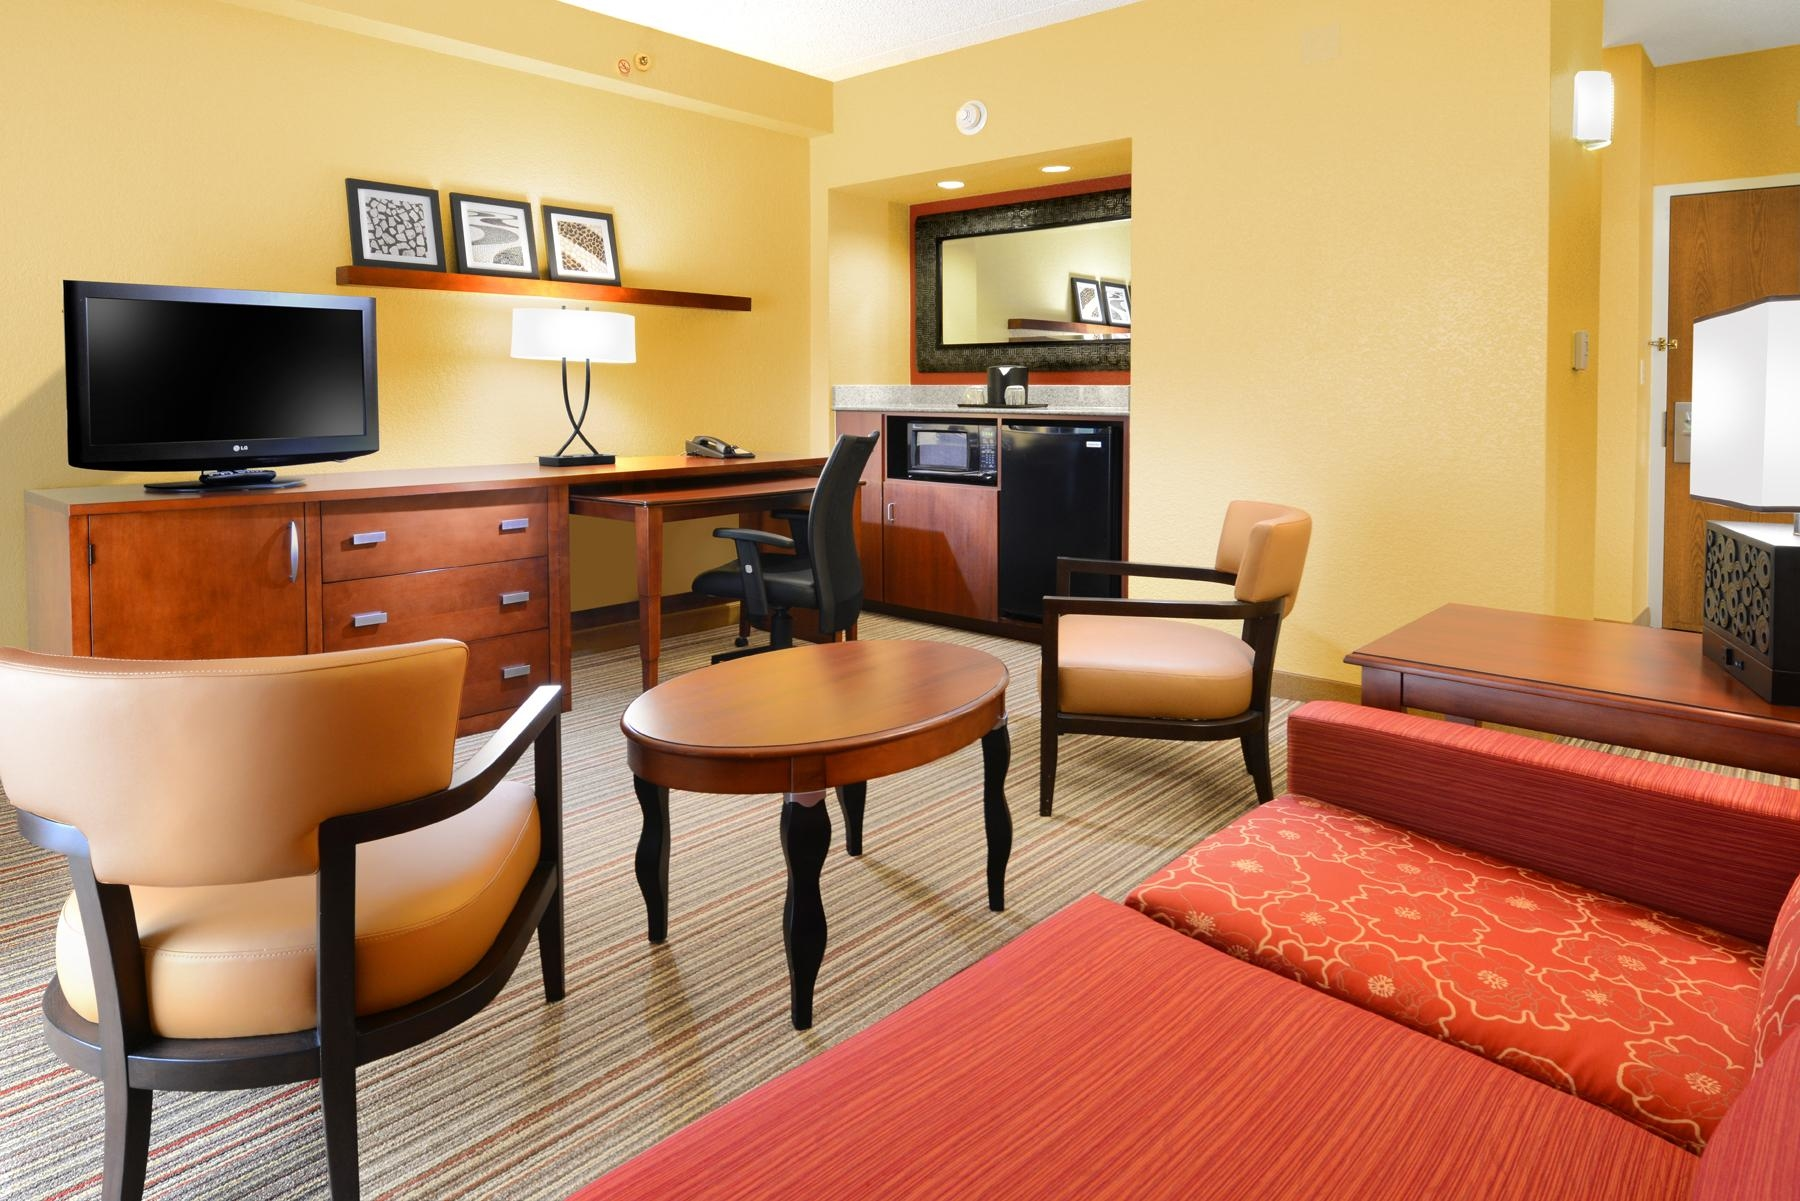 Courtyard by Marriott Fort Worth University Drive image 8